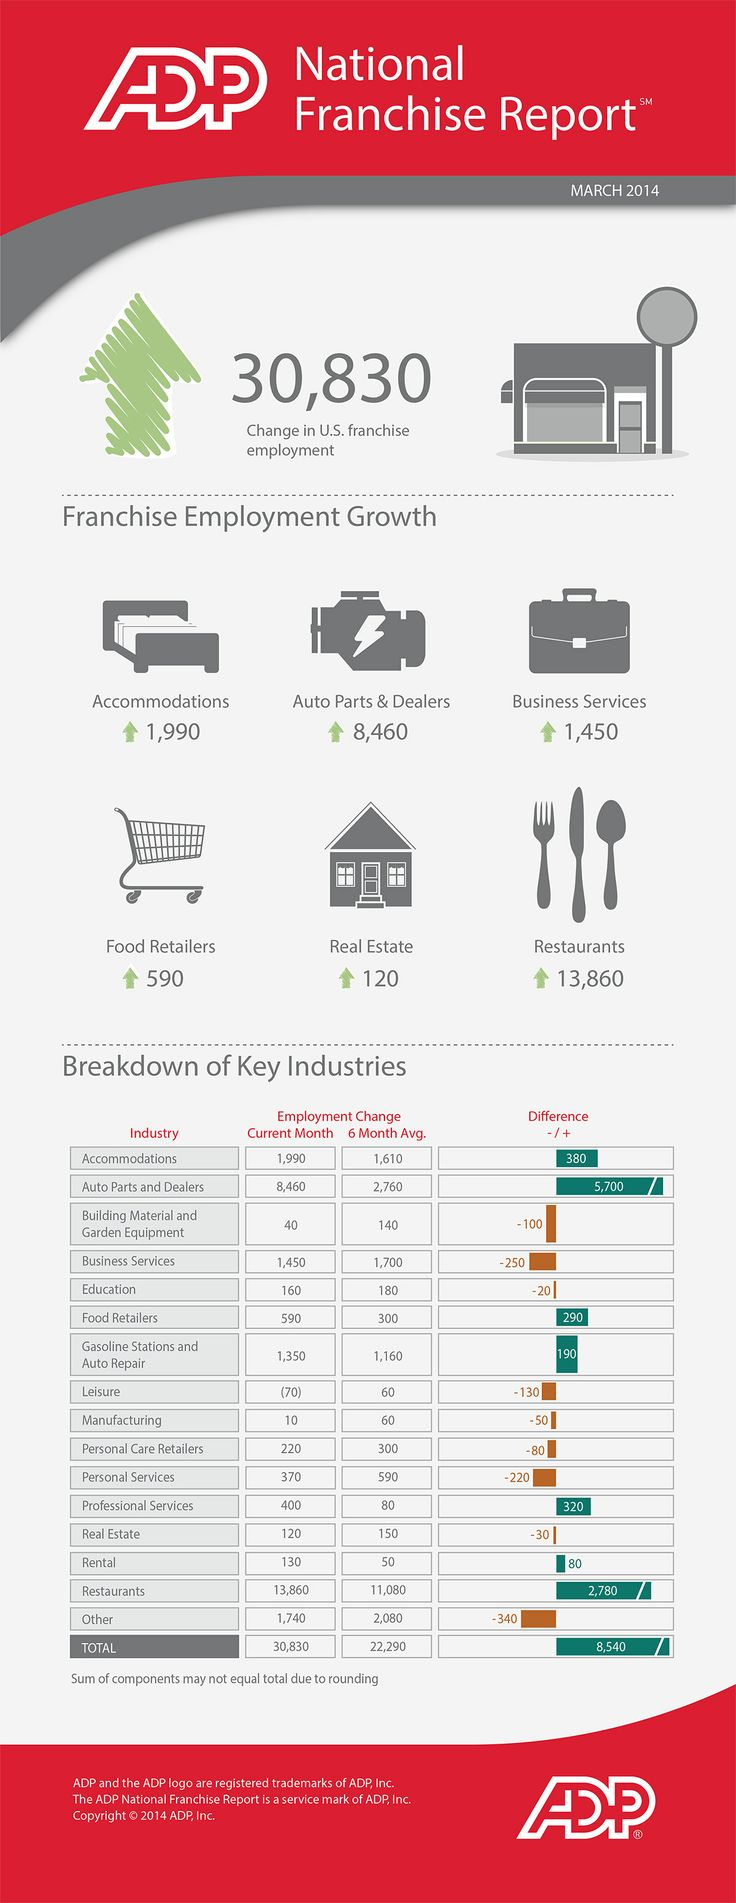 #Restaurant #Job Growth Rebounds in March 2014.  #Infographic